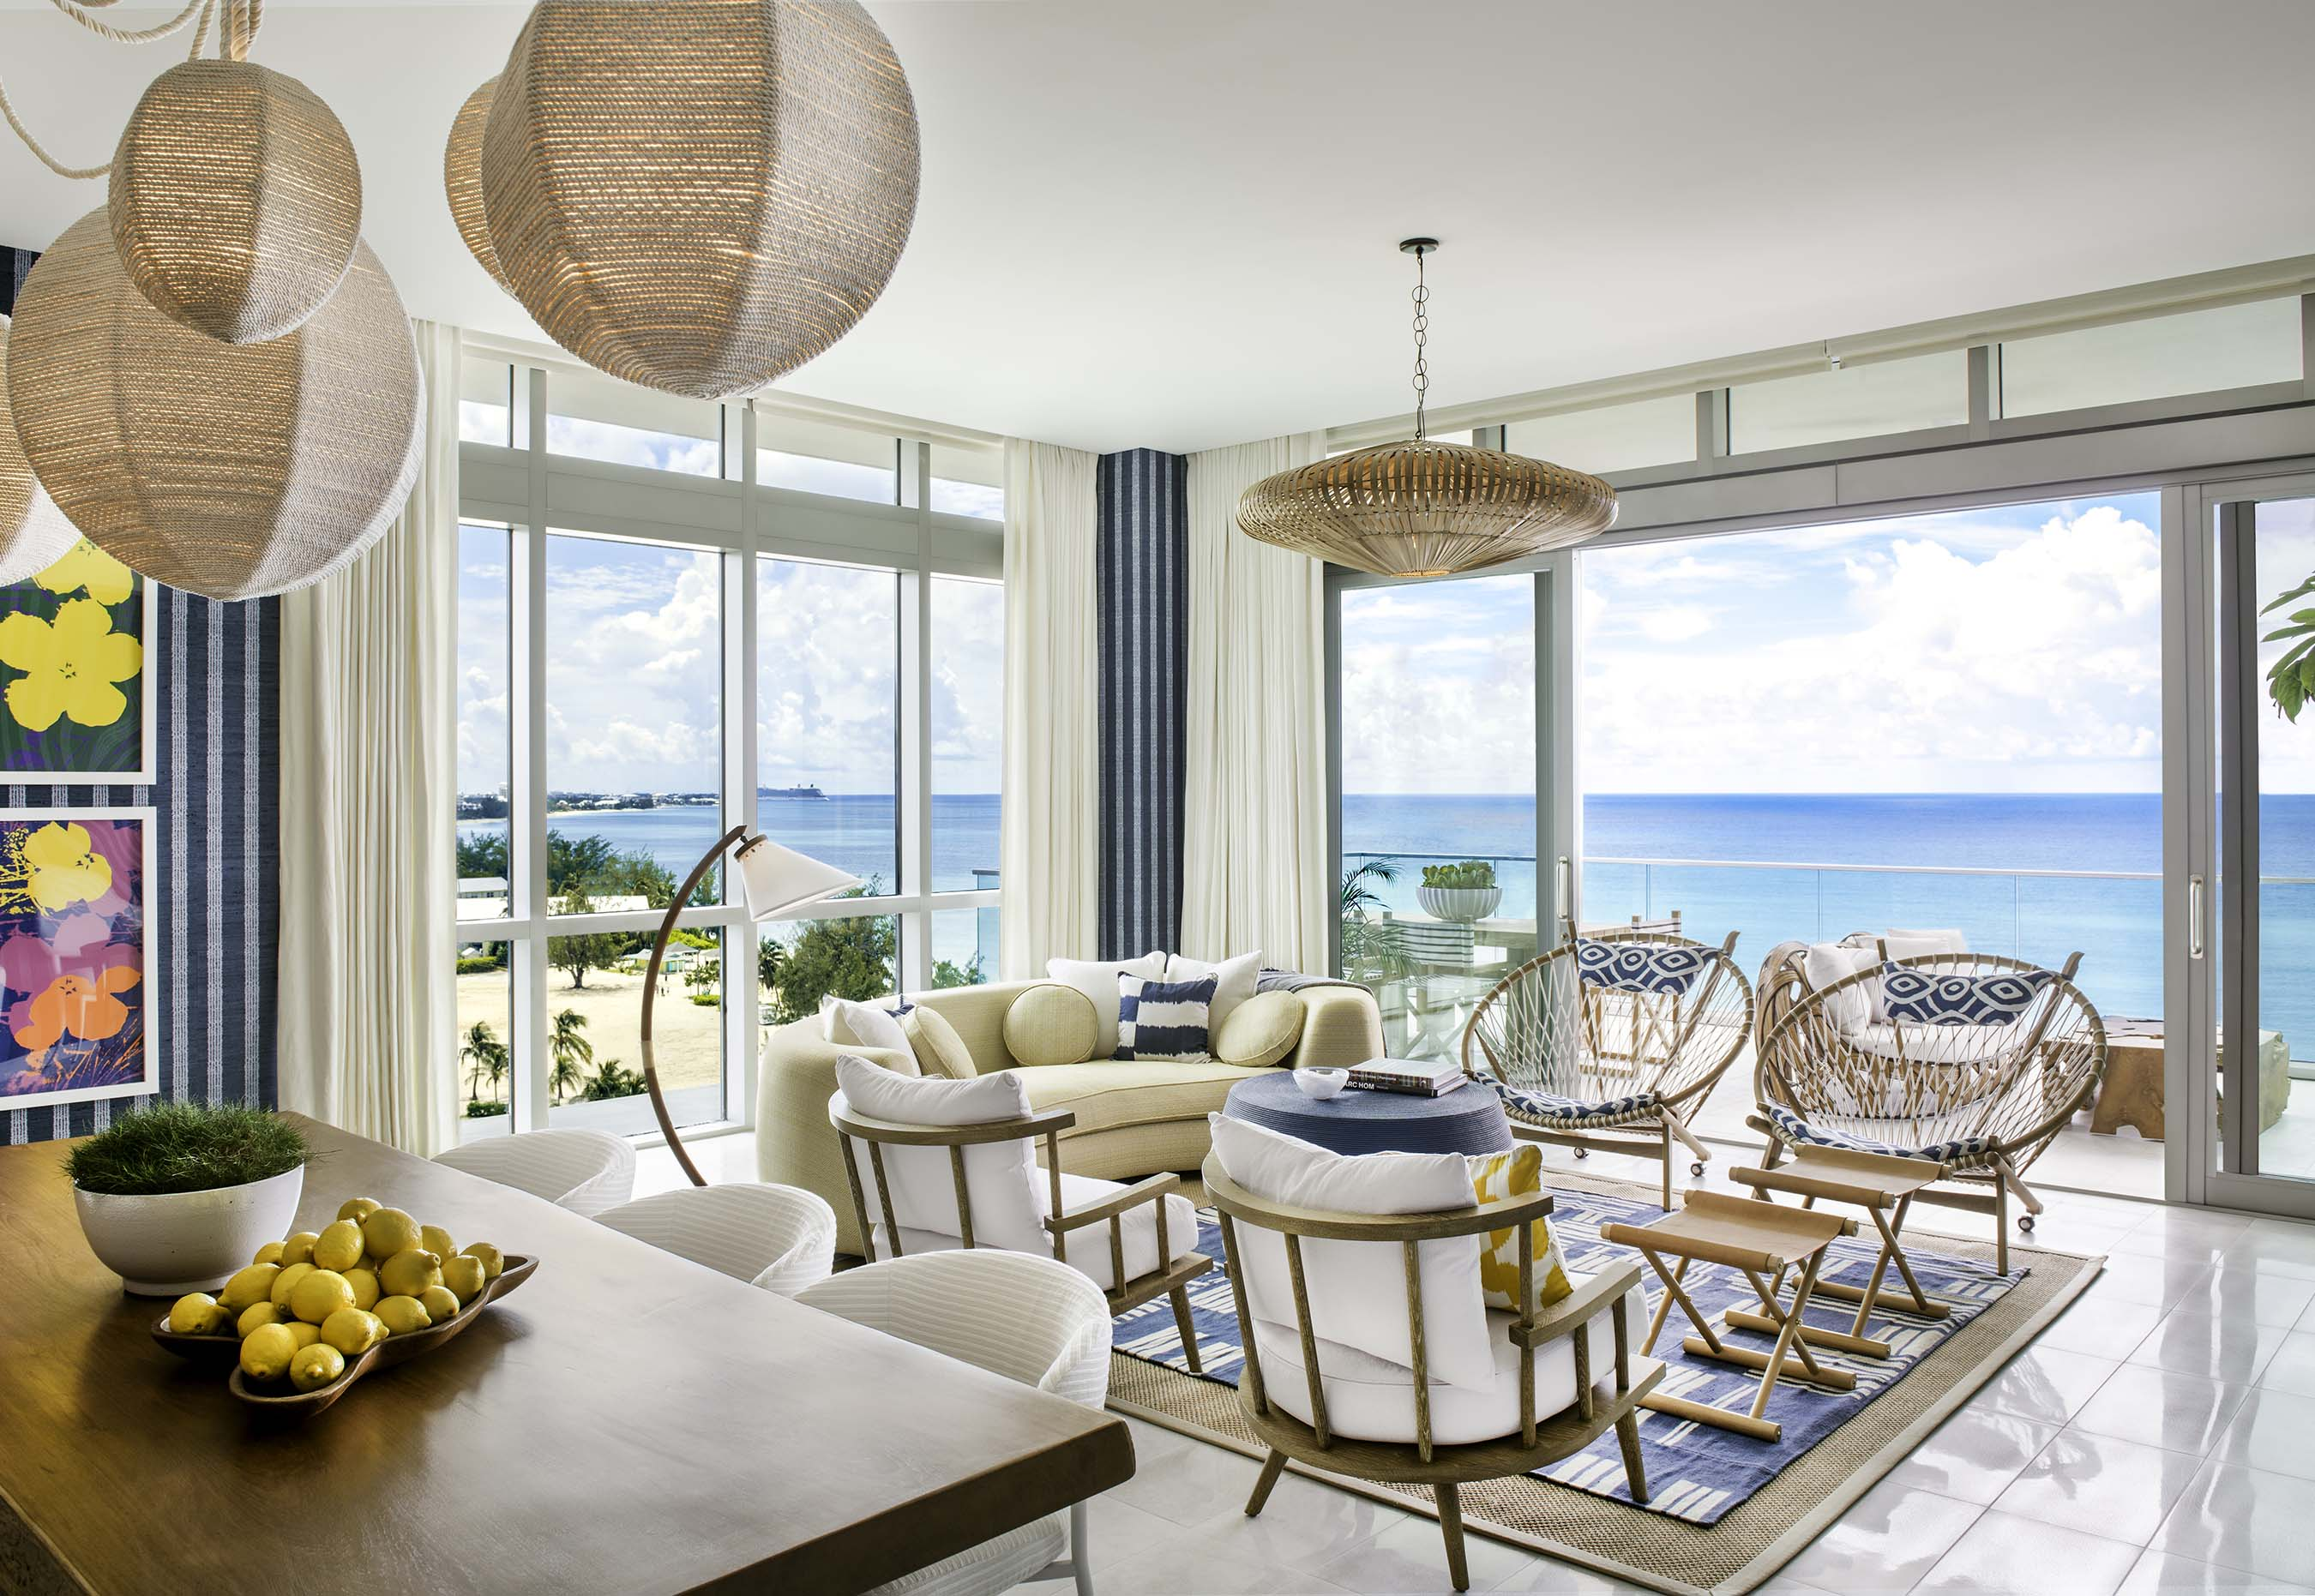 Discover Luxury Beachfront Living With The Residences At